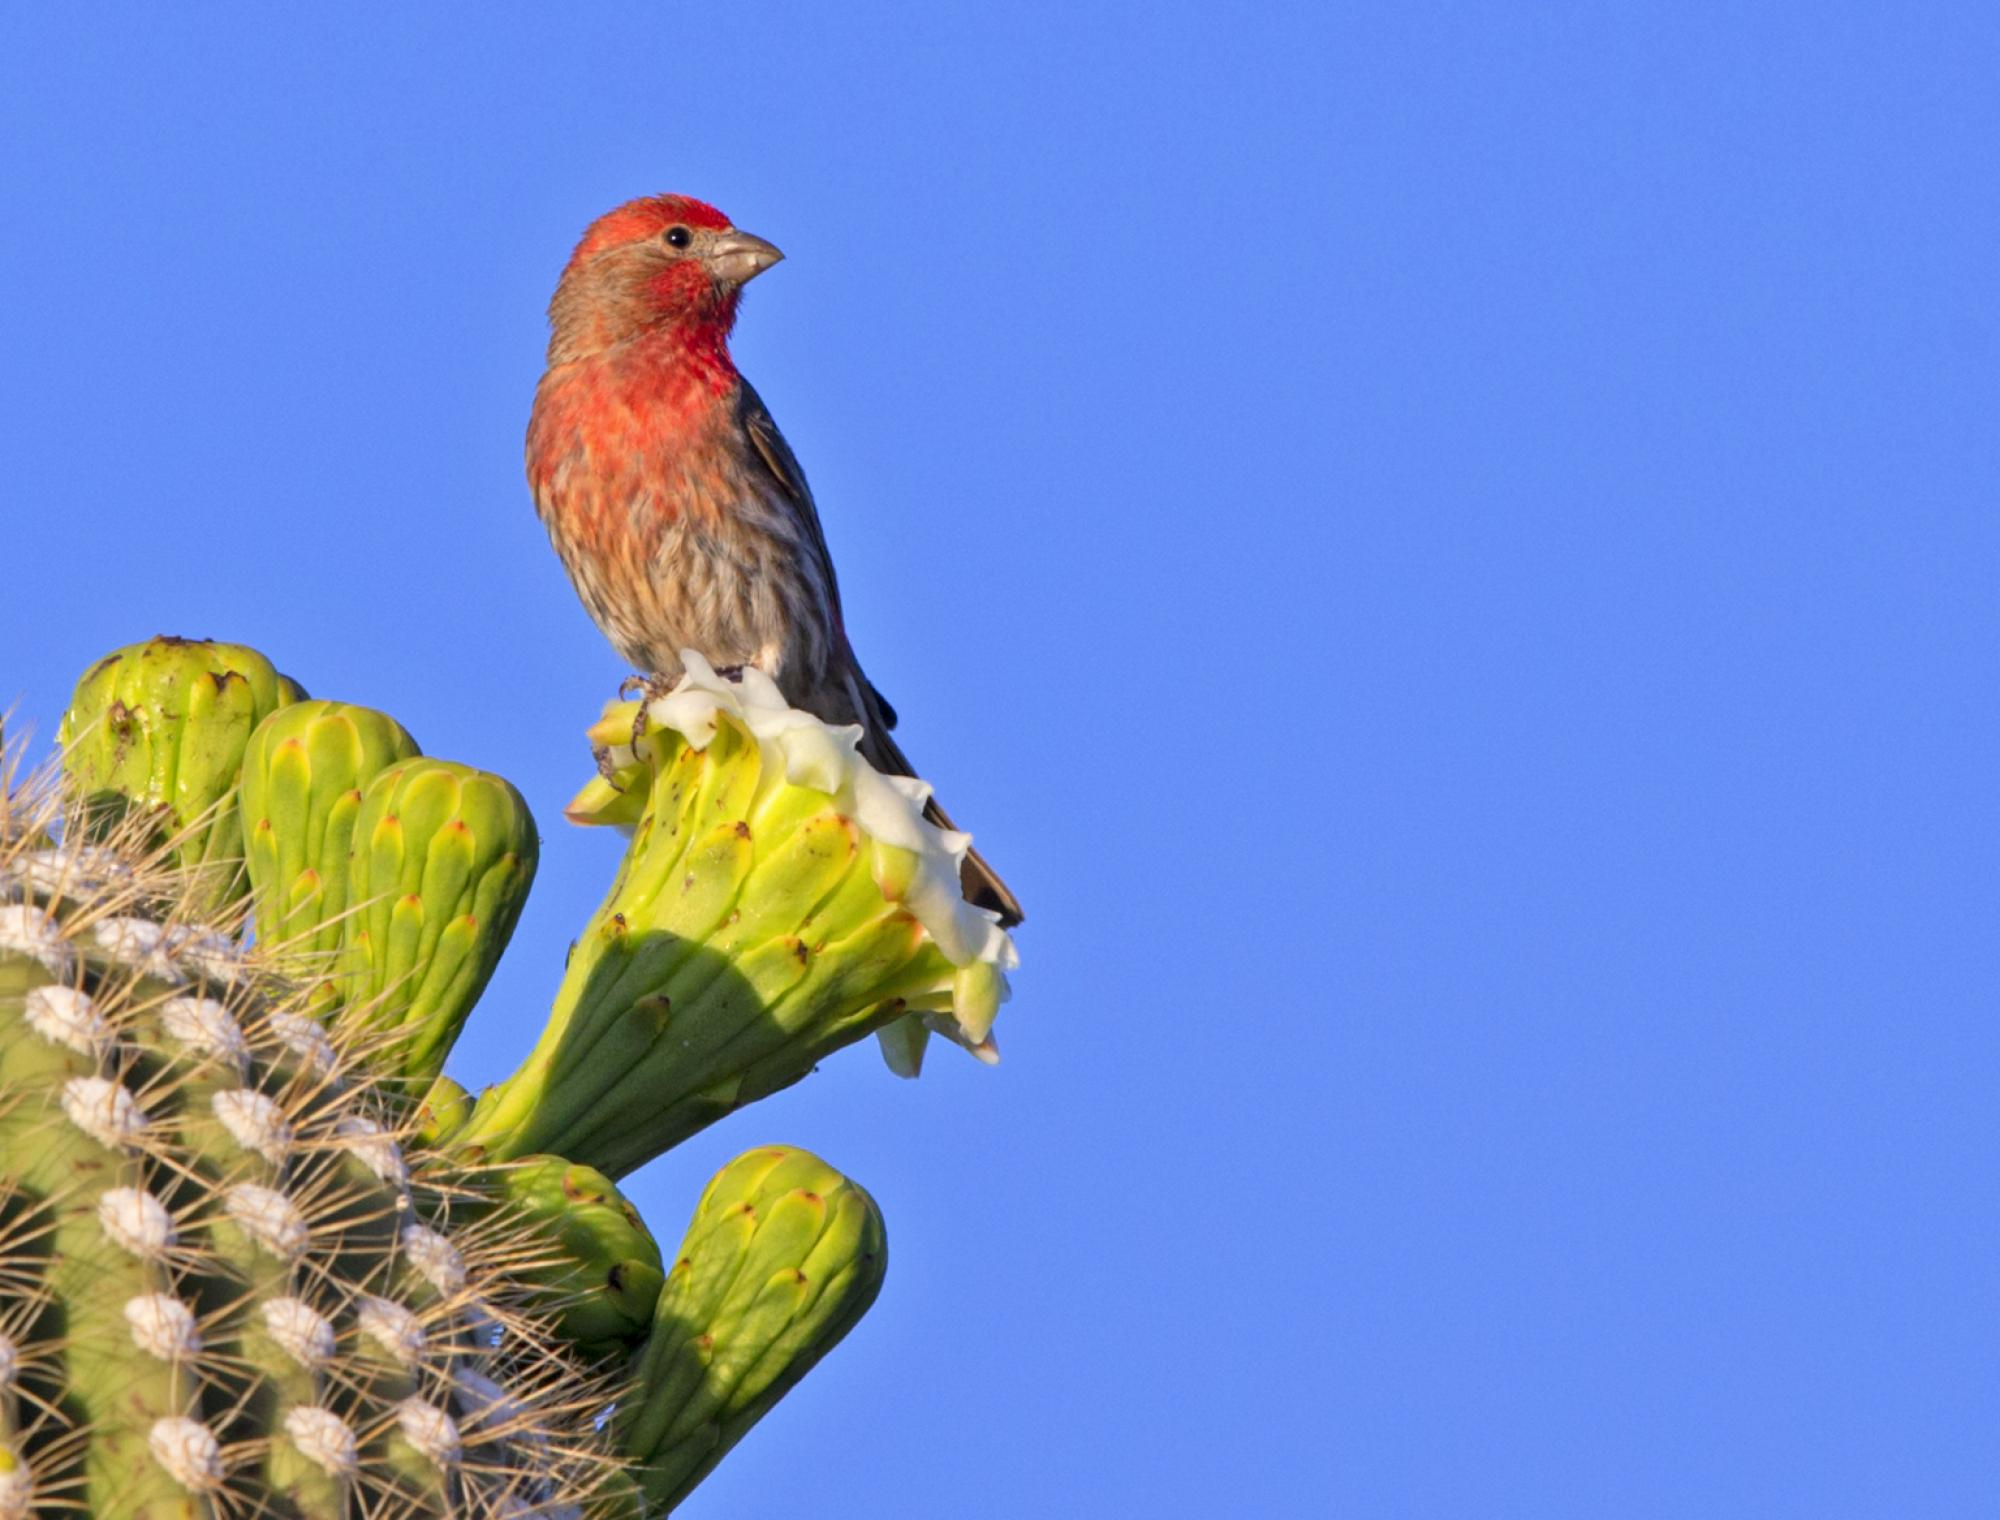 House finch colors itself with 24 carotenoid compounds derived from diverse dietary sources, such as saguaro pollen.